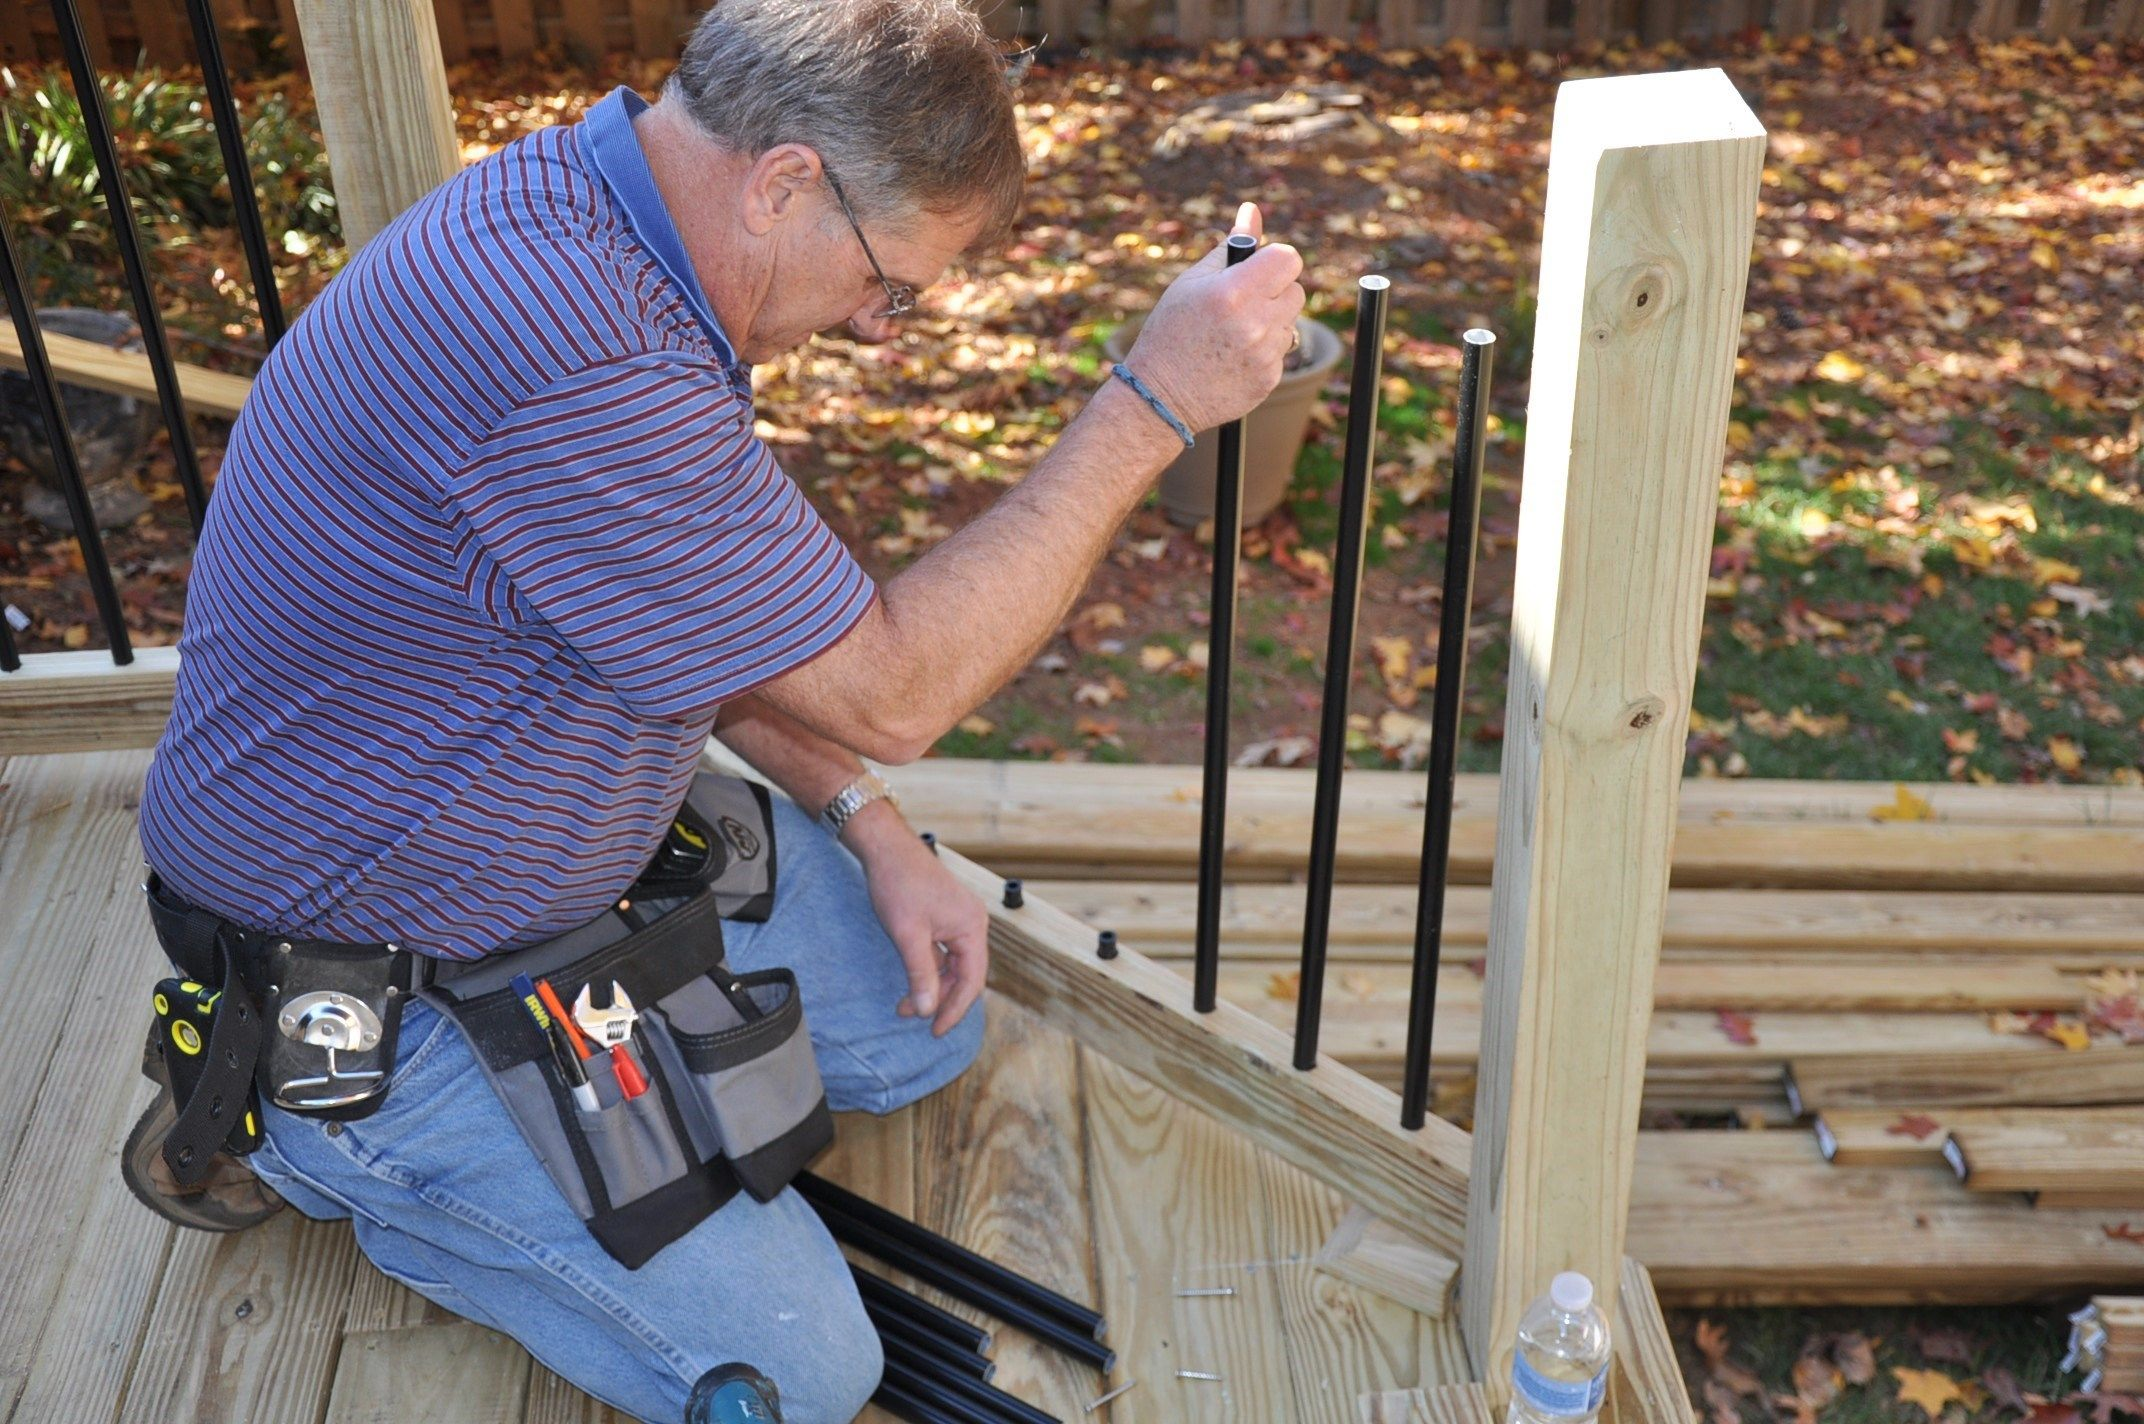 Deck Railing Balusters Deck Railings Deck Railing Systems | Installing Deck Stair Railing | Outdoor Stair | Baluster | Railing Ideas | Stair Treads | Stair Stringers